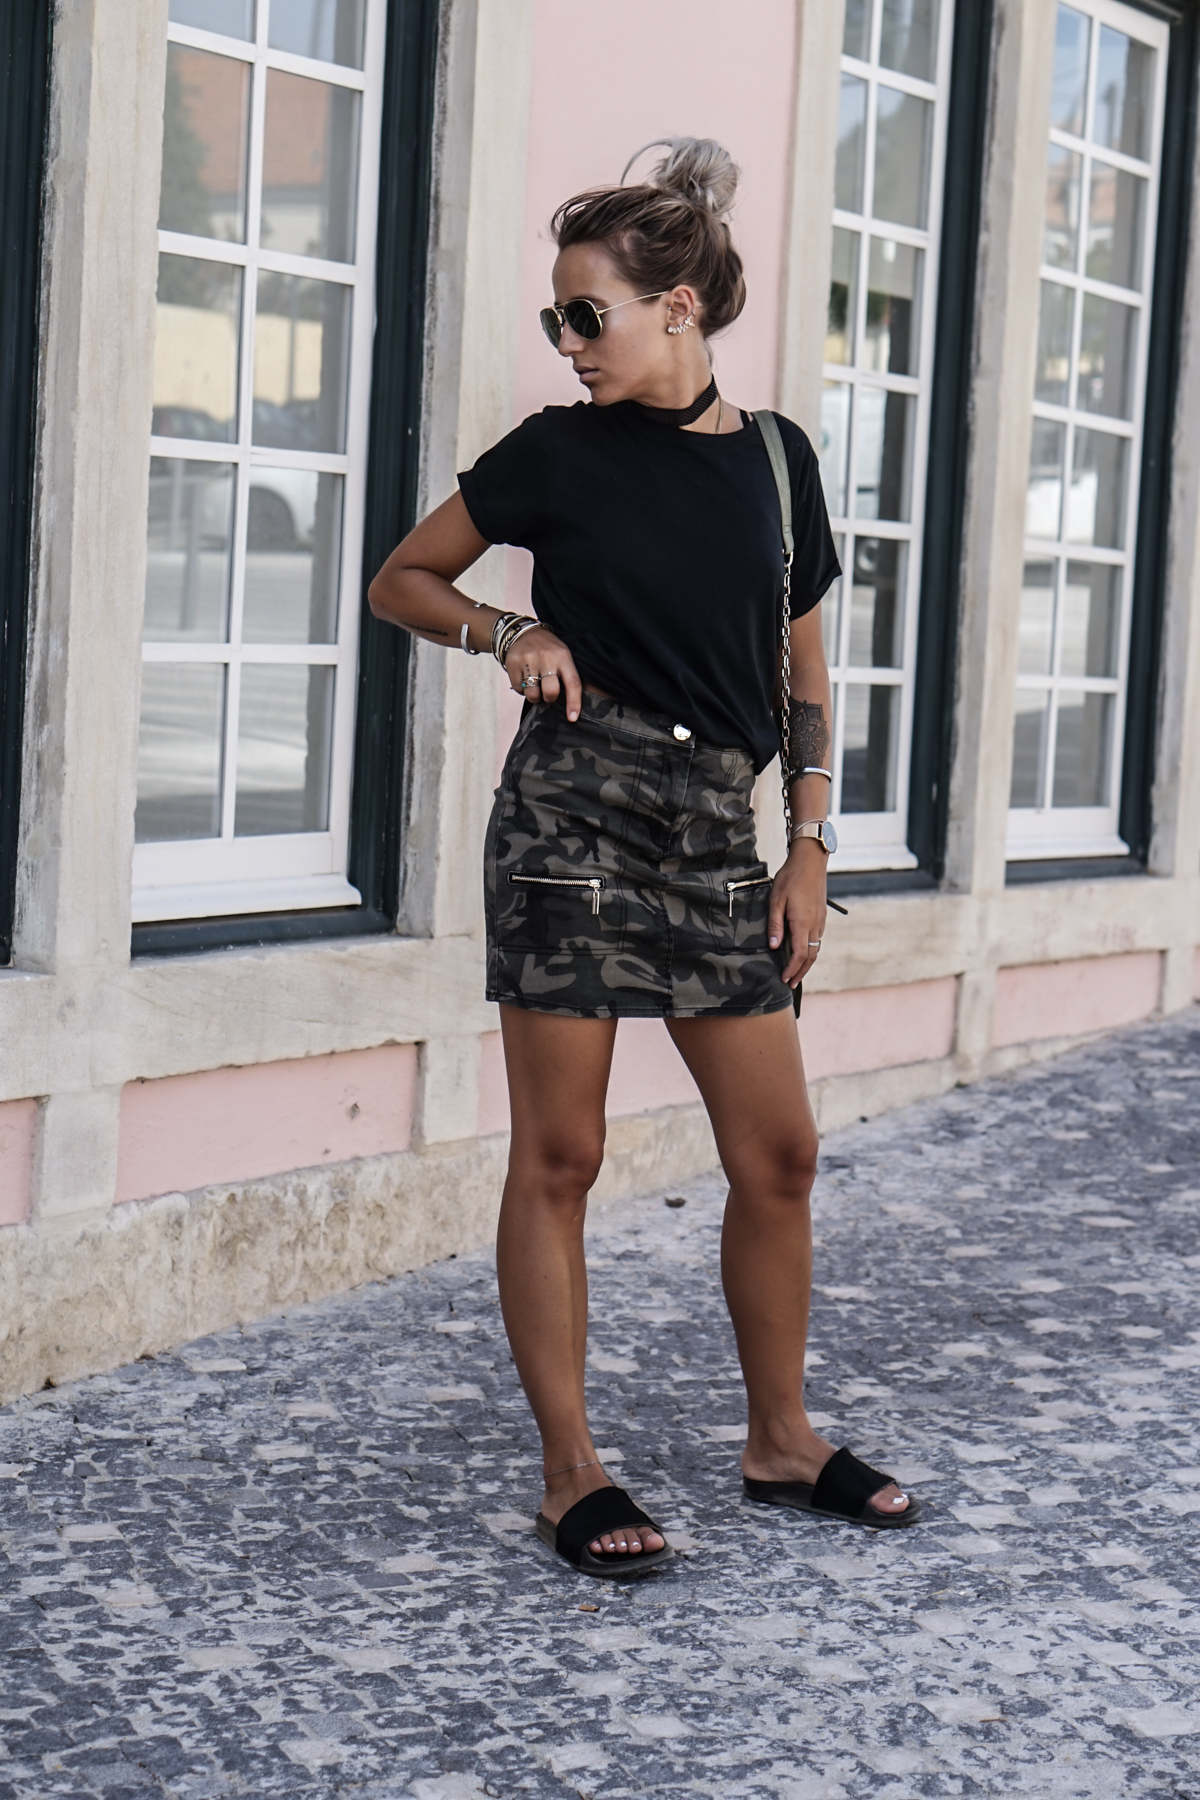 There are a hundred great ways to wear the mini skirt trend. Camille Callen is edgy and original in this camo print skirt with zip detailing, paired simply with a black tee and flats. Shirt: Mango, Skirt: Asos, Bag: Zara.